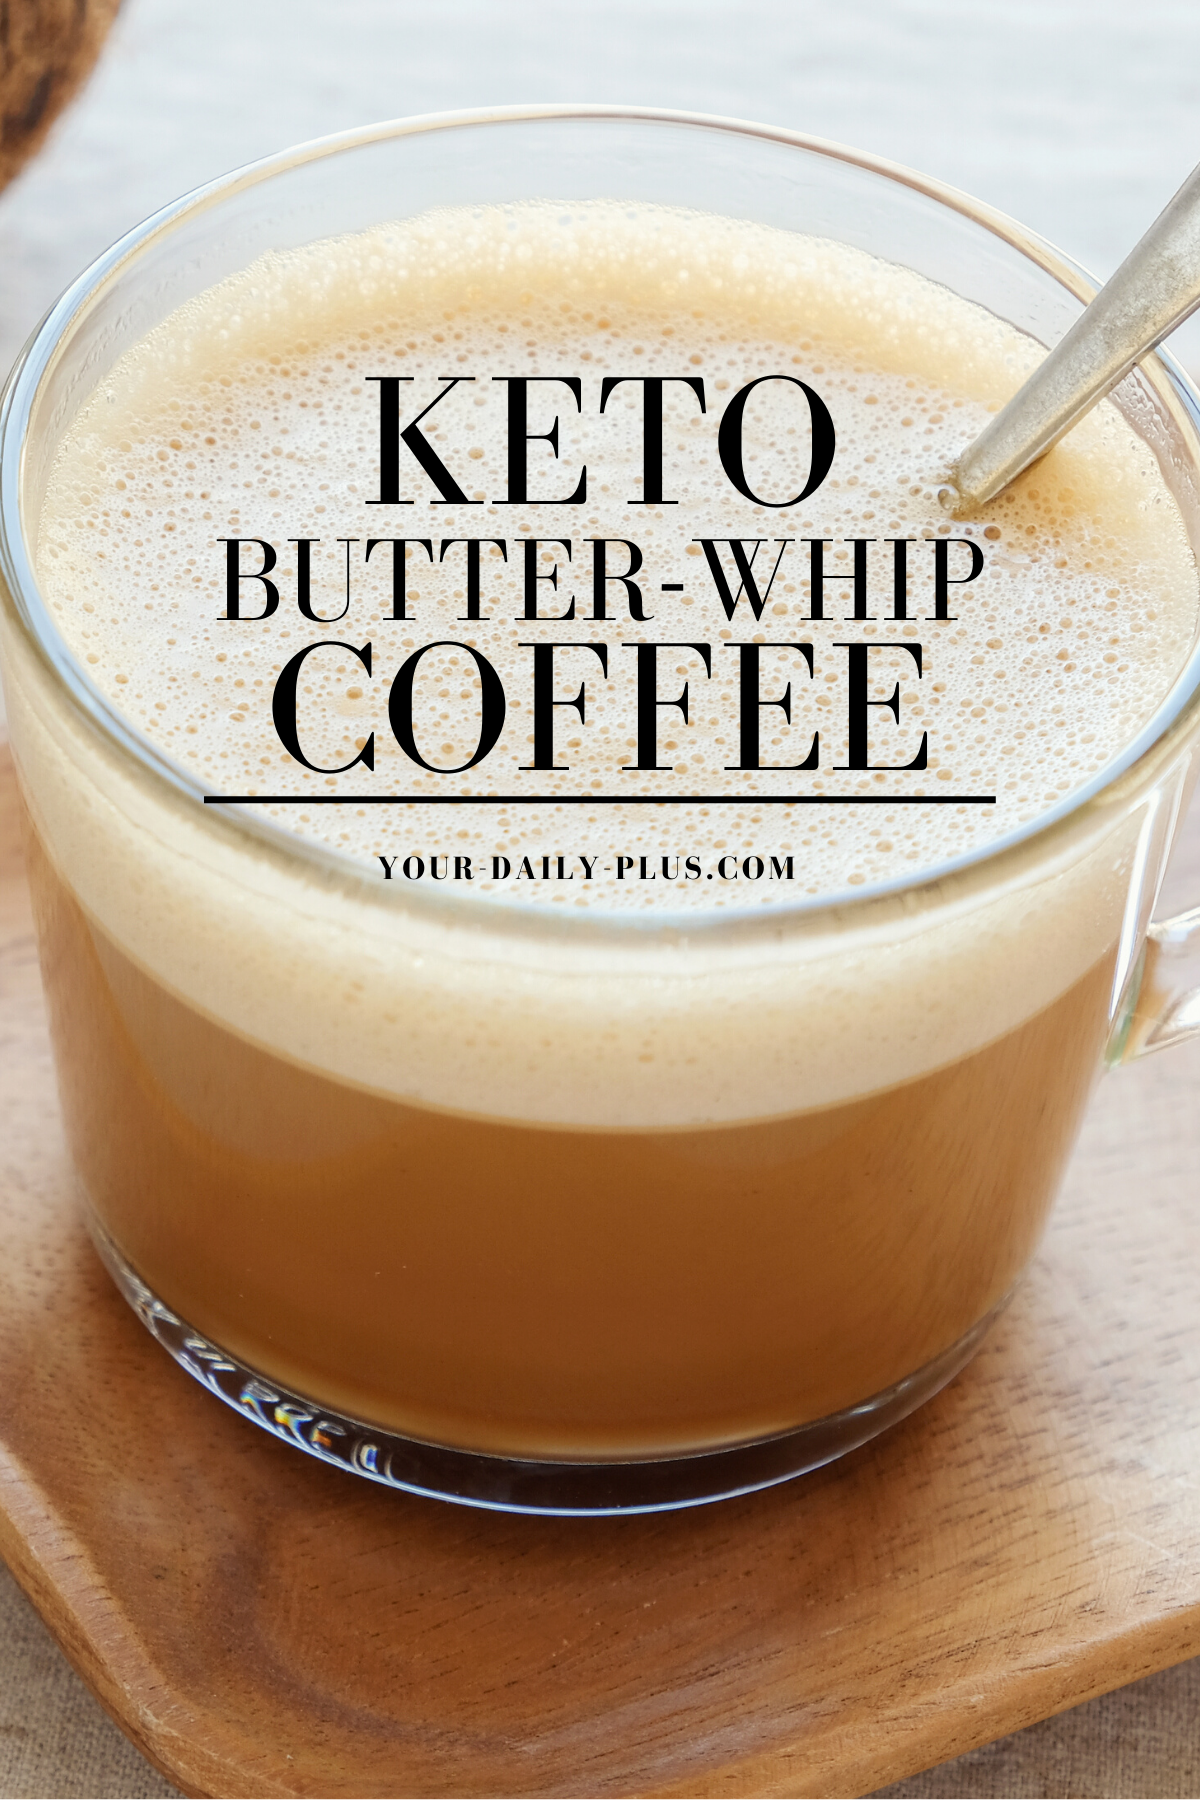 You are not going to believe you've been missing out on the awesome flavor of butter and coffee all this time. The texture of the coffee is creamy and the power kick you're going to get out of this is out of this world. In fact, feel totally satiated with just the butter coffee for the whole of the morning, but you ave the option of pairing it with nuts. #coffee #ketocoffee #ketodiet